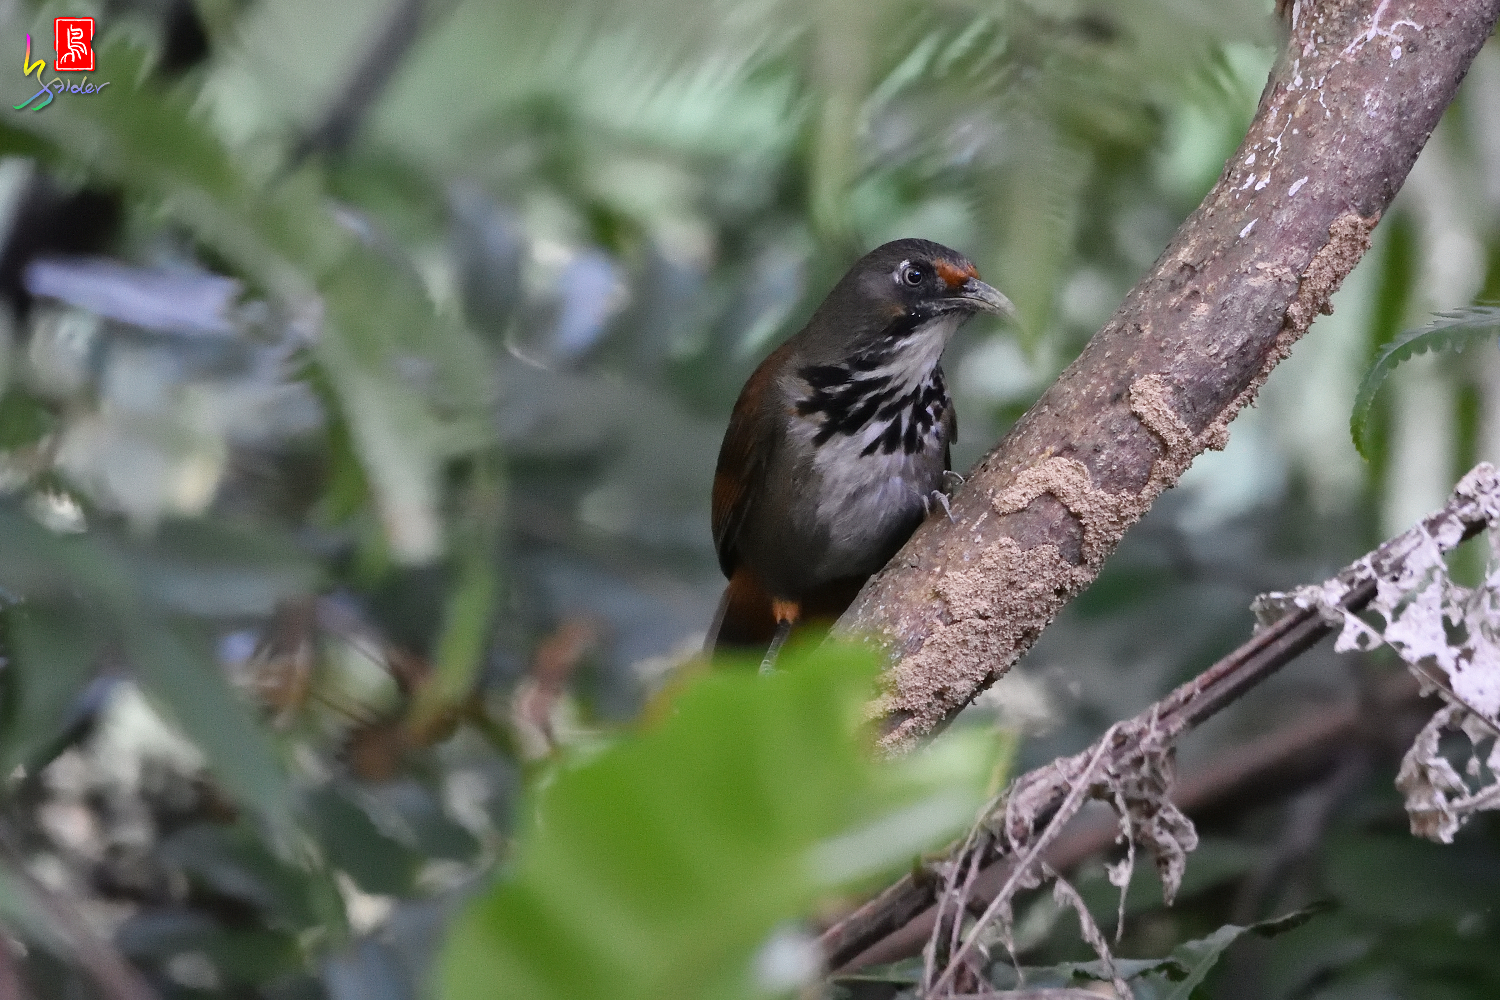 Rusty-cheeked_Scimitar_Babbler_7350